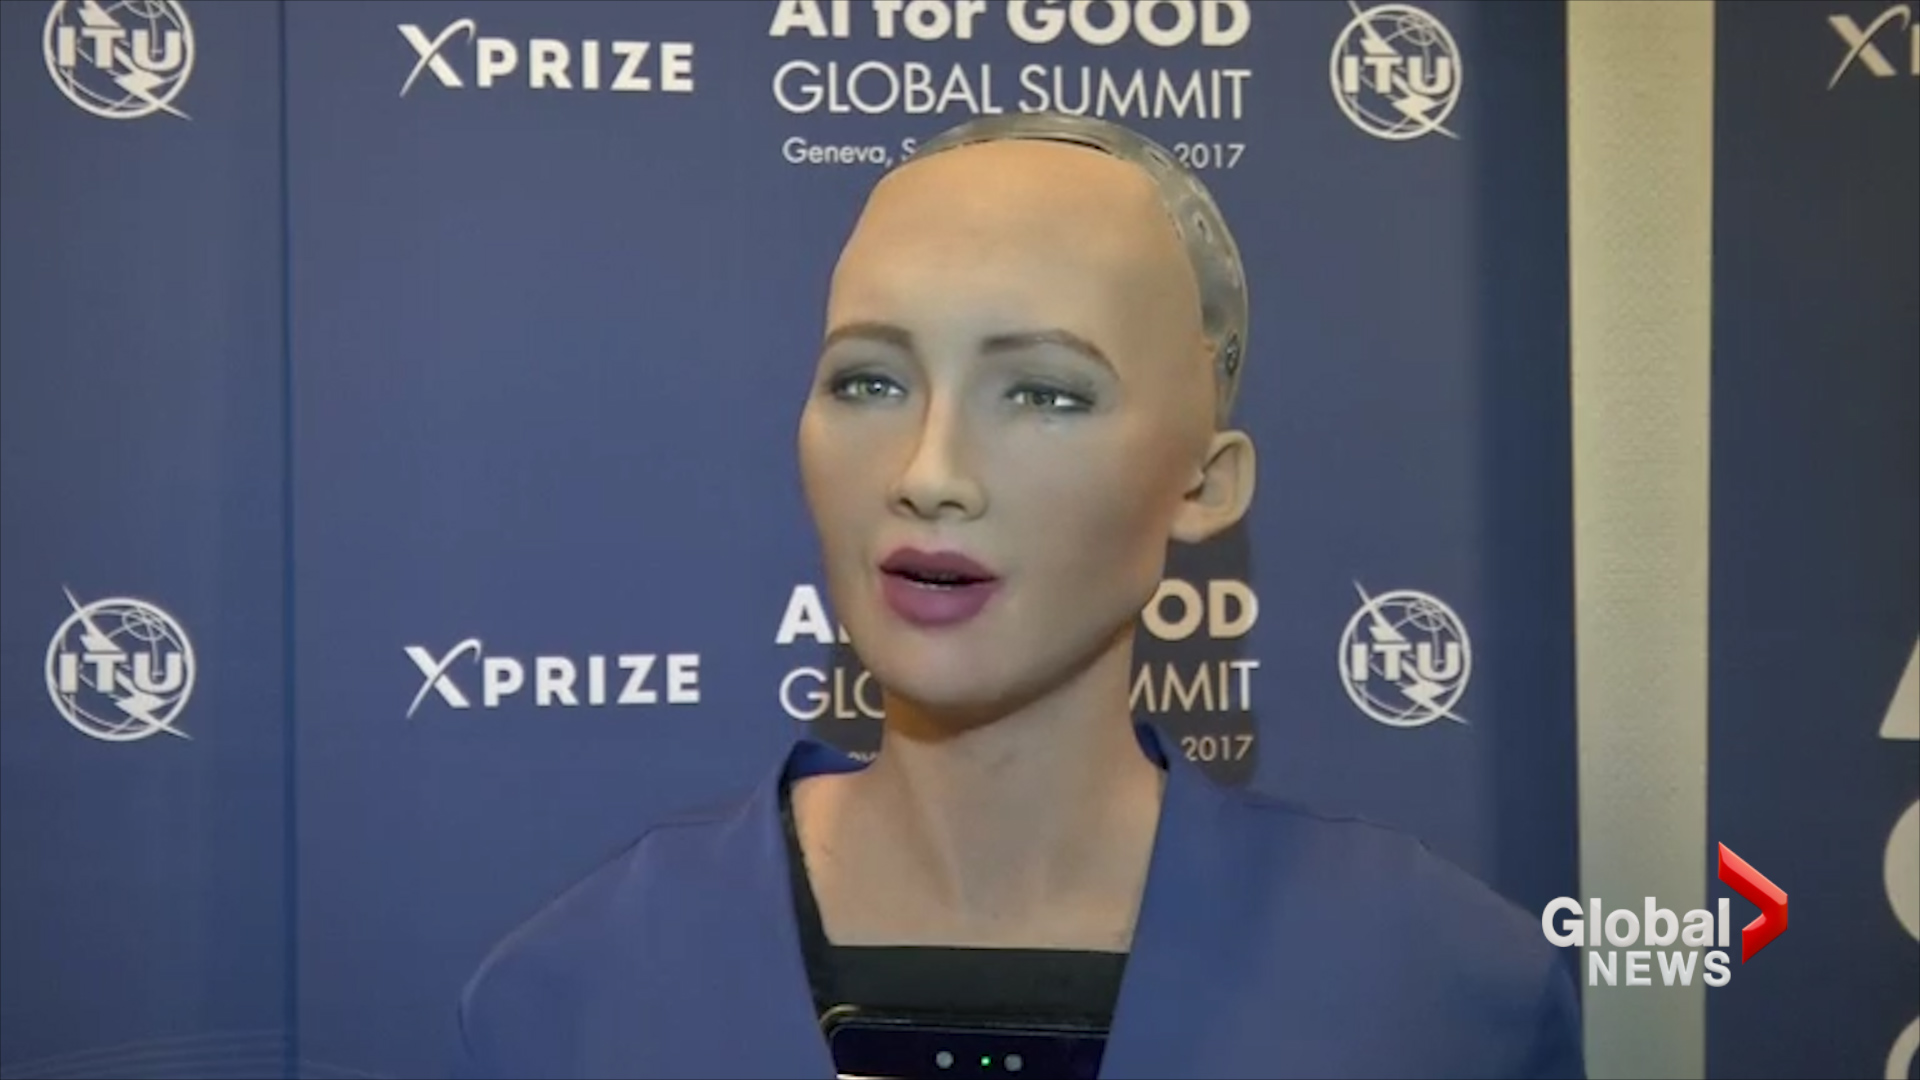 Saudi Arabia grants citizenship to a robot